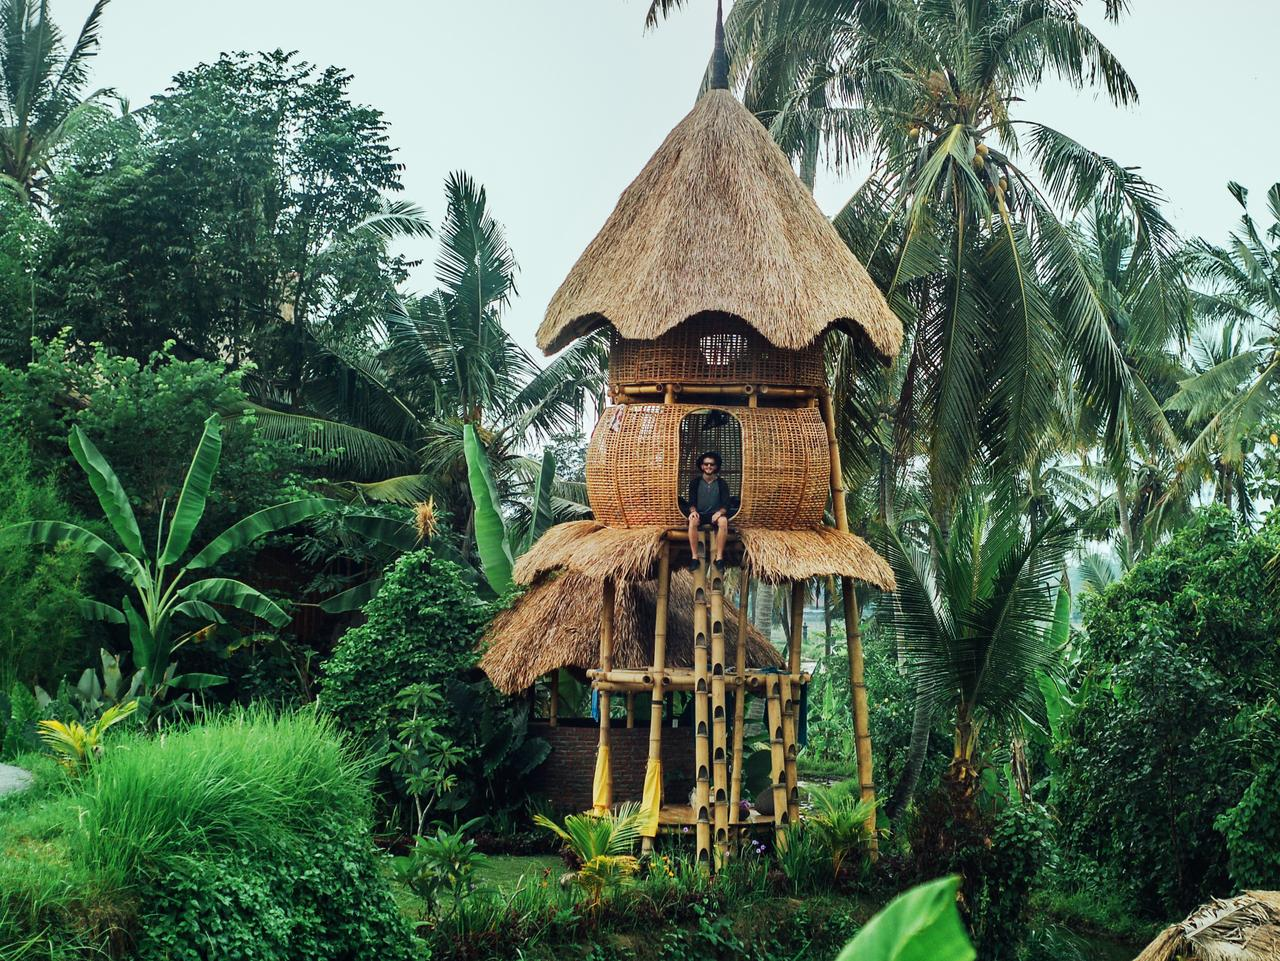 Bamboo eco-cottage accommodation at Peliatan, Ubud, Bali. Picture: Kim&Nash @thenomadicpeople / Instagram